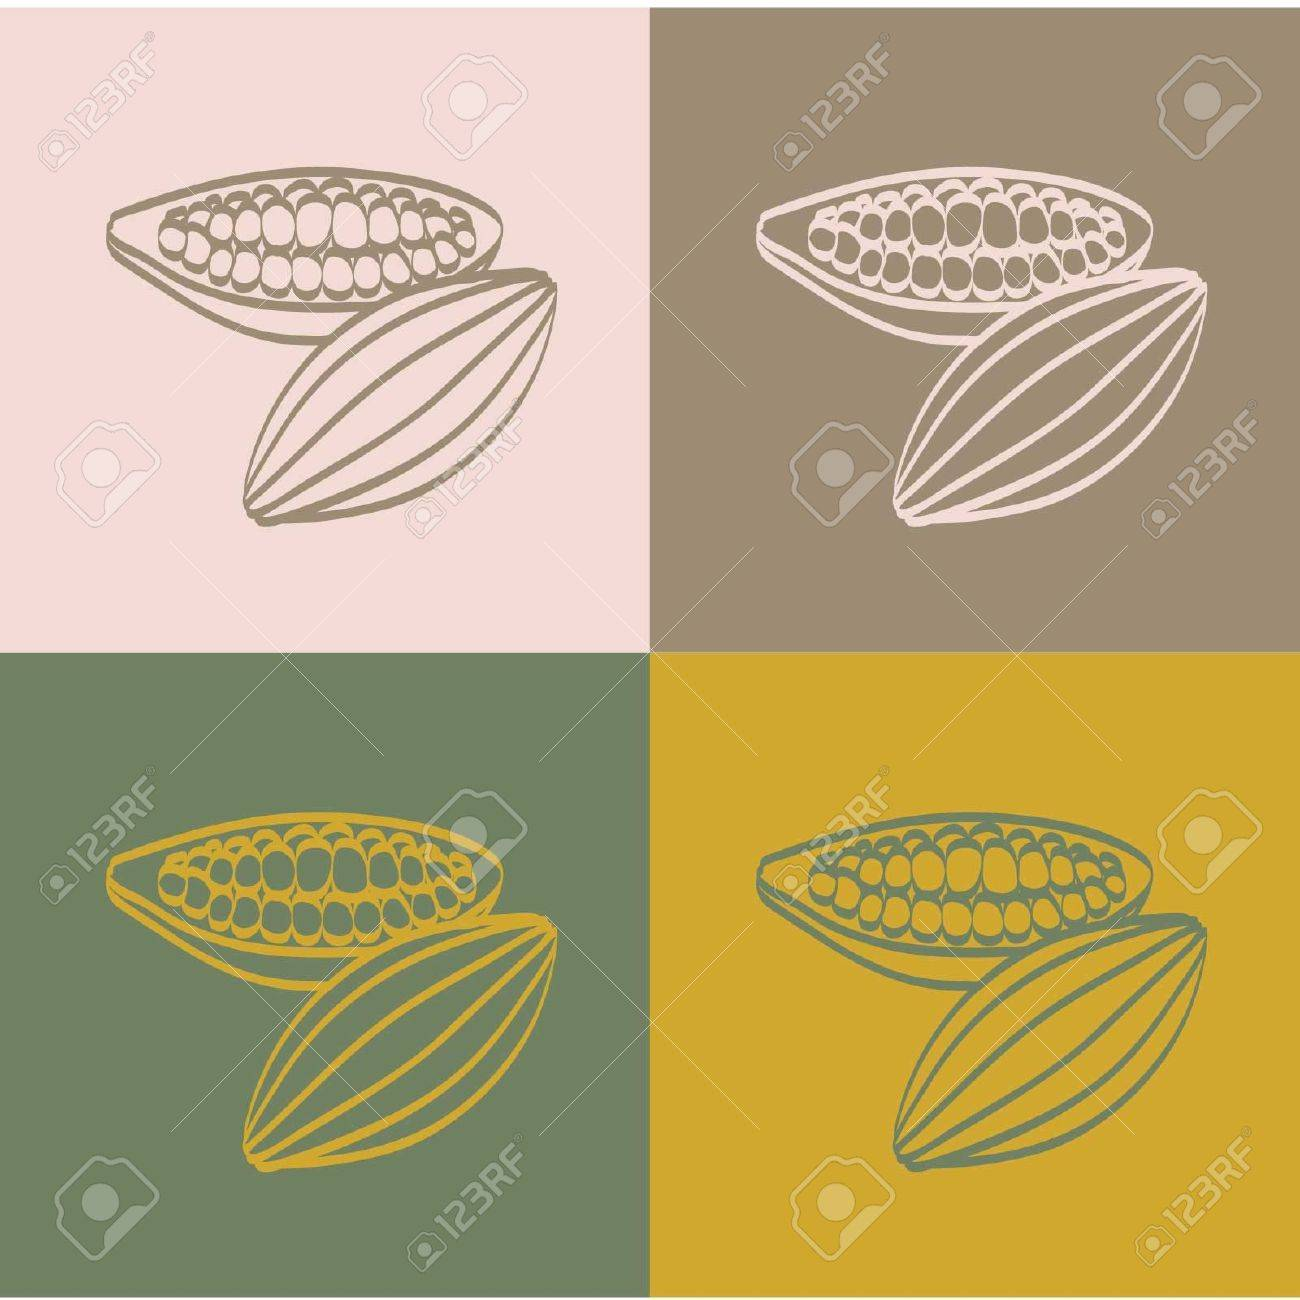 Cocoa beans on a color  background Stock Vector - 12828305